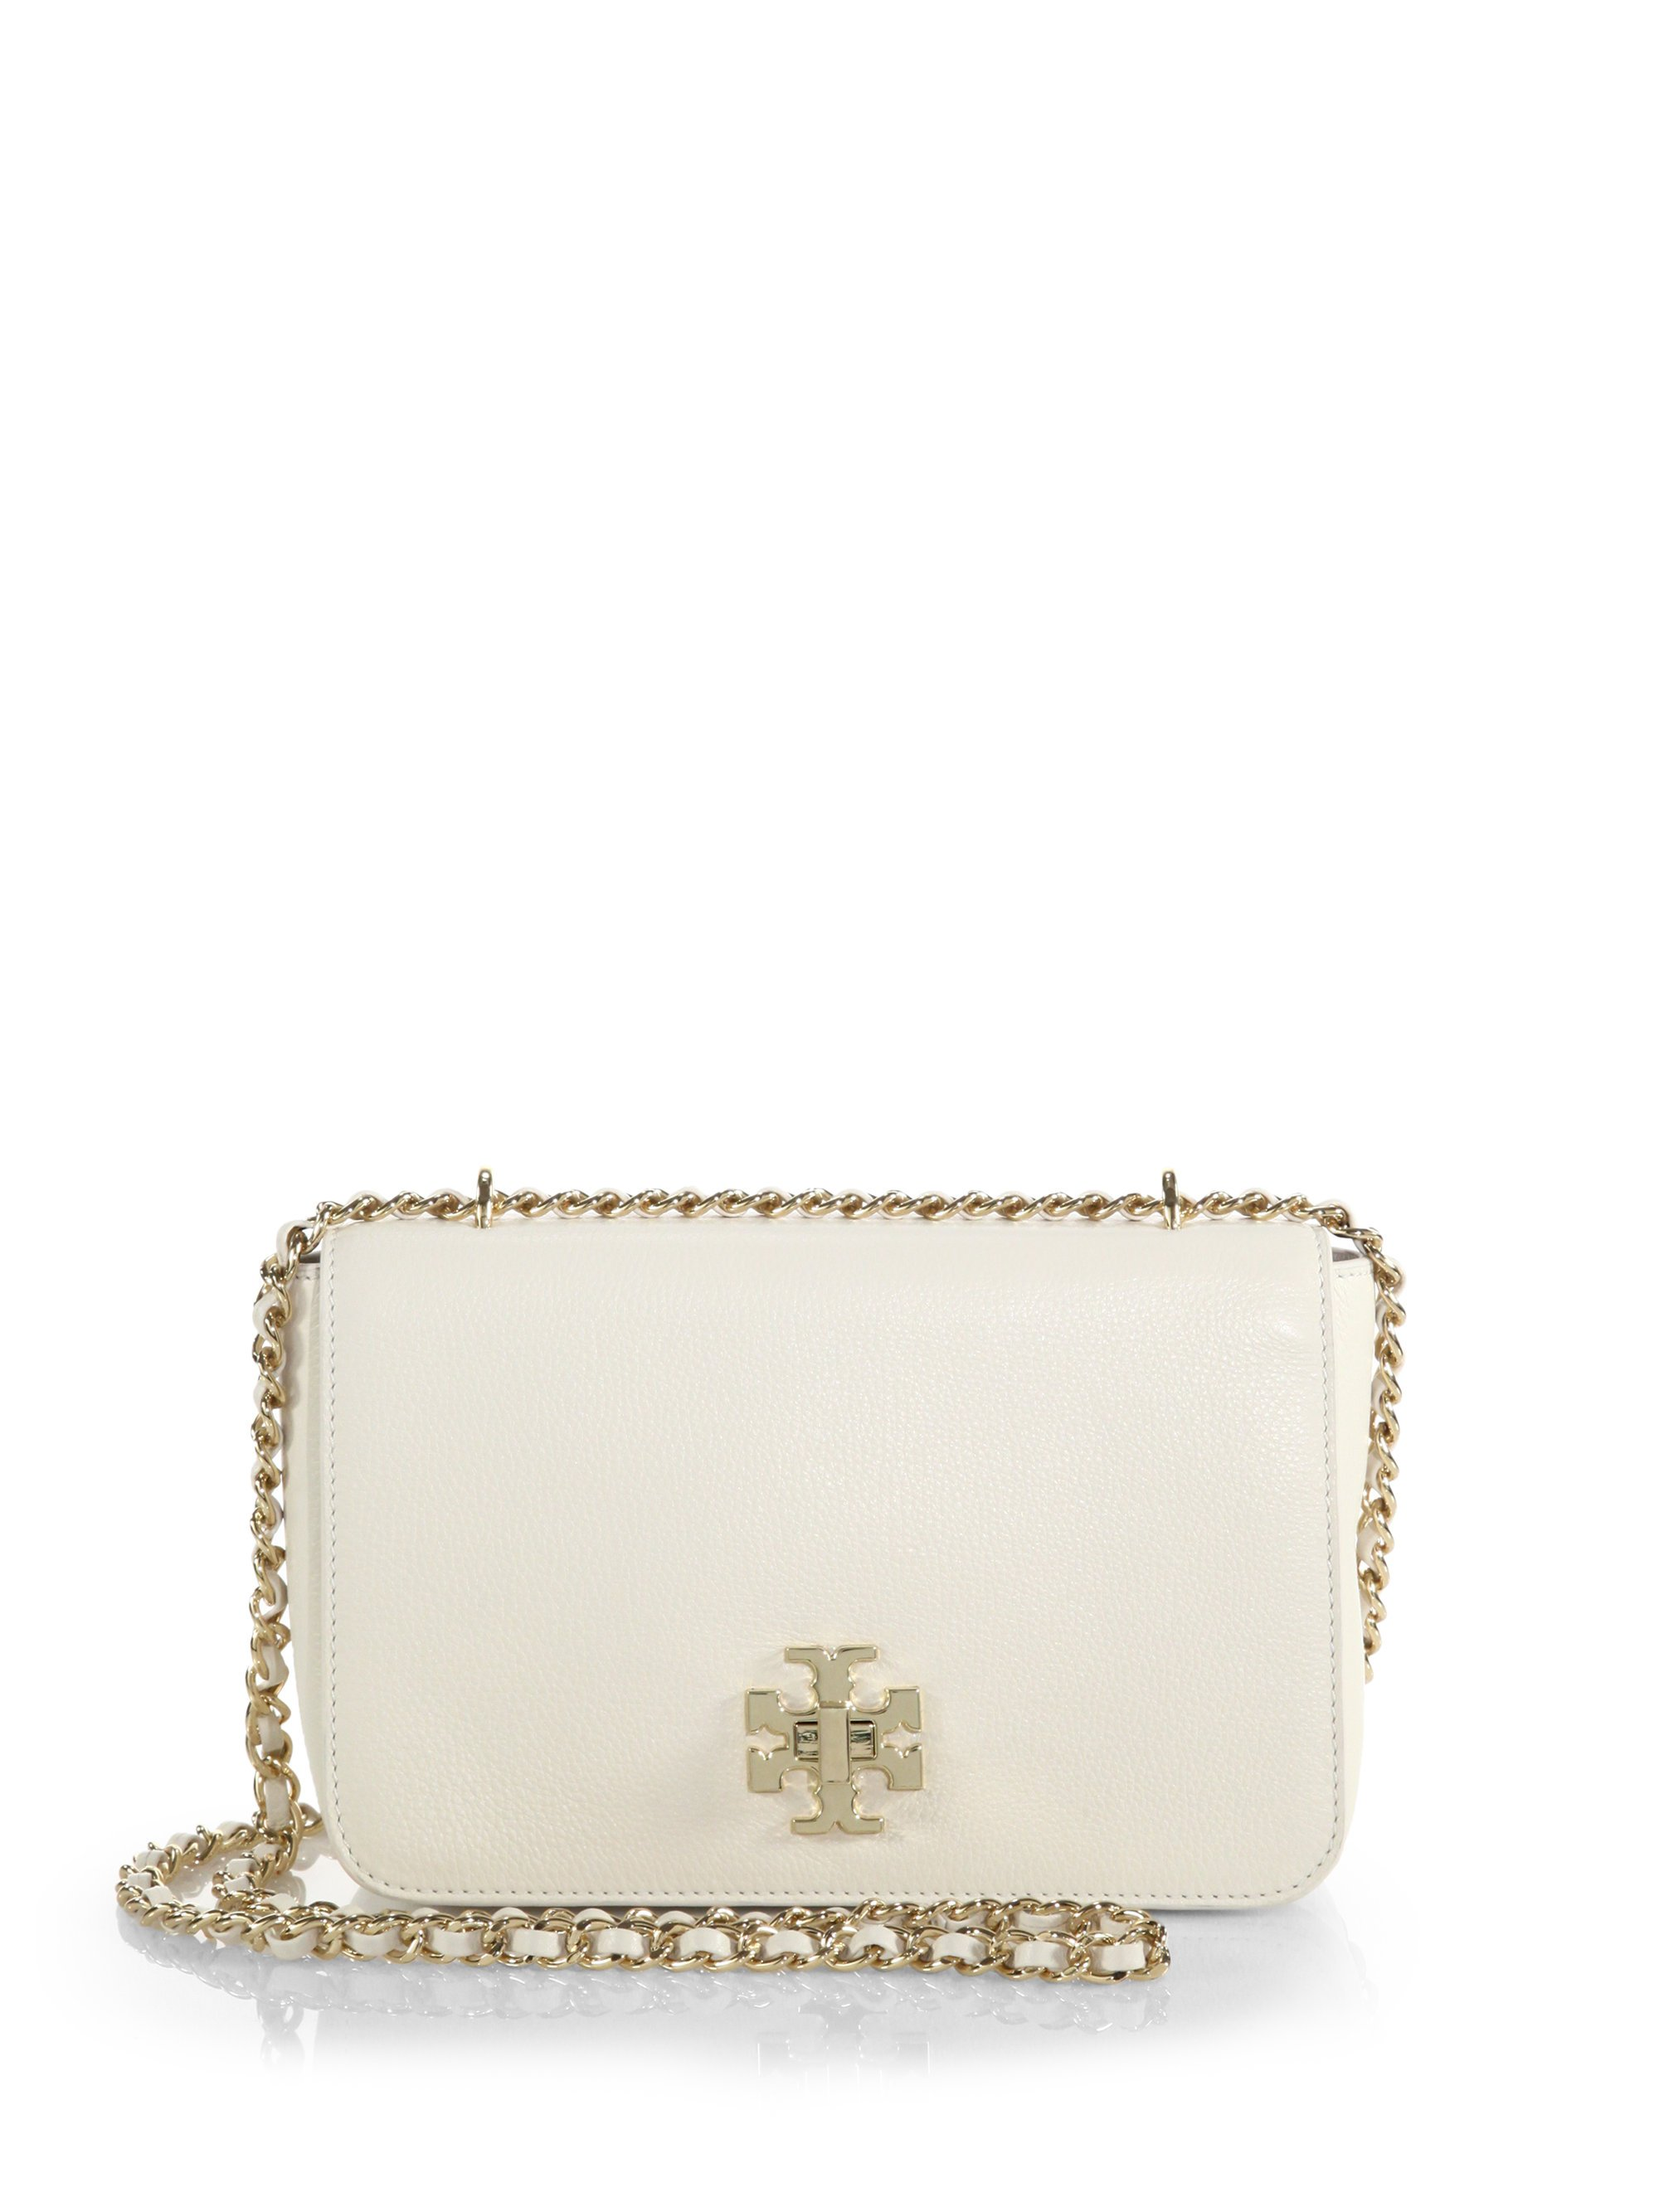 163ad1b58814 Lyst - Tory Burch Mercer Pebbled-leather Chain Shoulder Bag in White